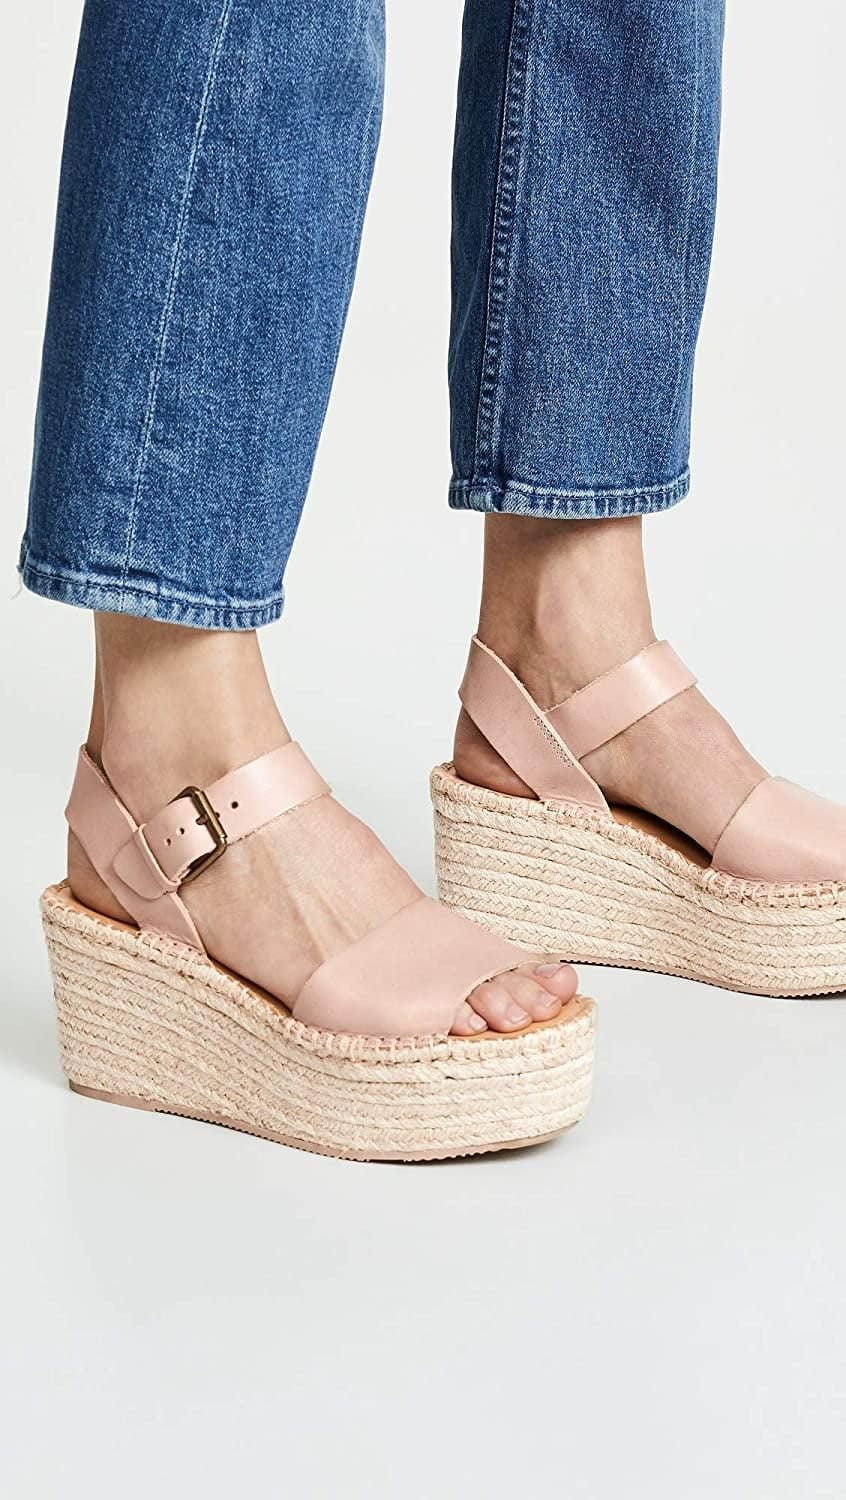 <p>If you don't shy away from a bit of height, go for these dressier <span>Soludos Minorca High Platform Sandals</span> ($30 - $127).</p>